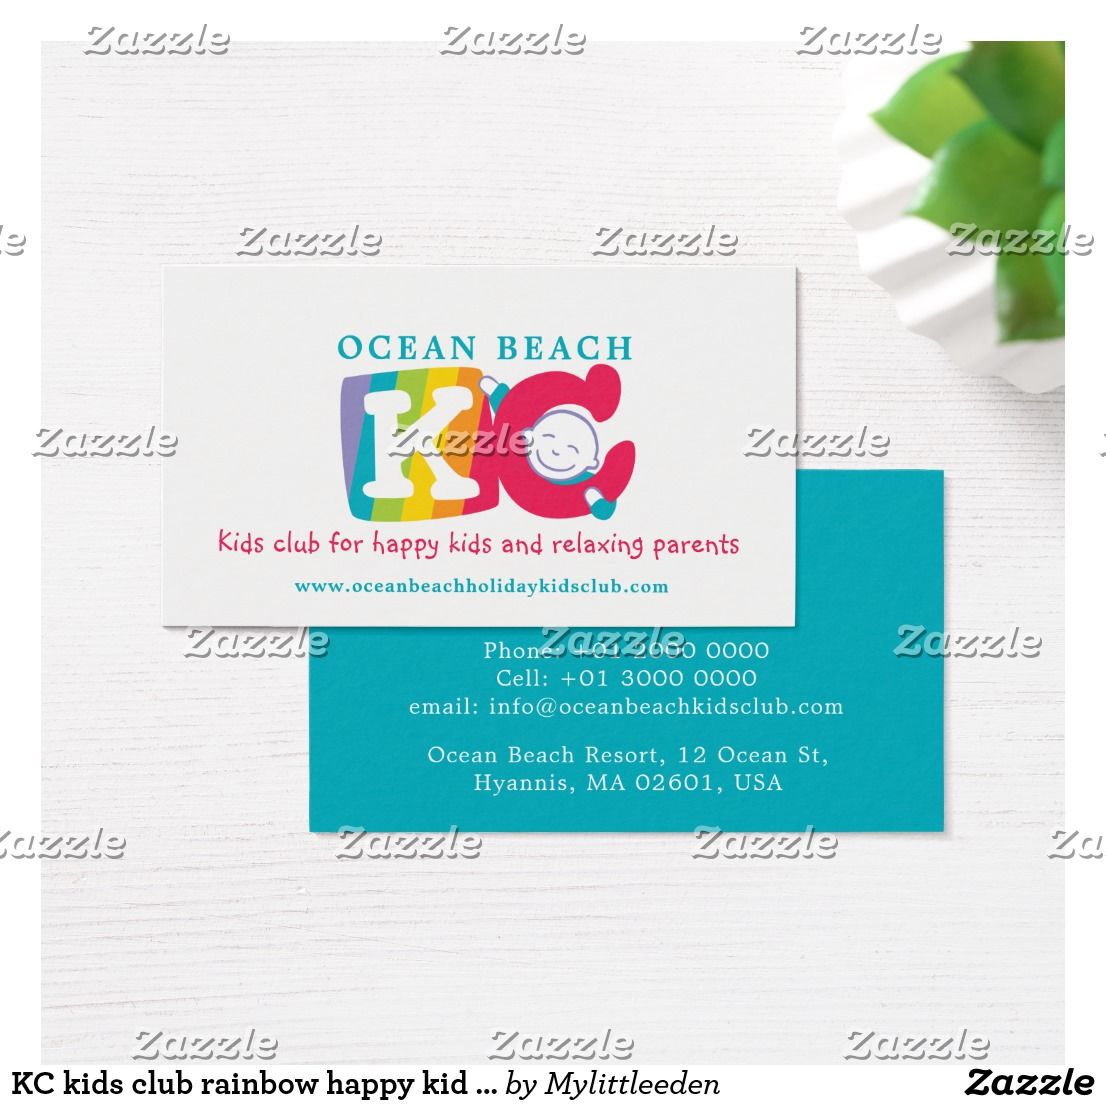 KC kids club rainbow happy kid business card